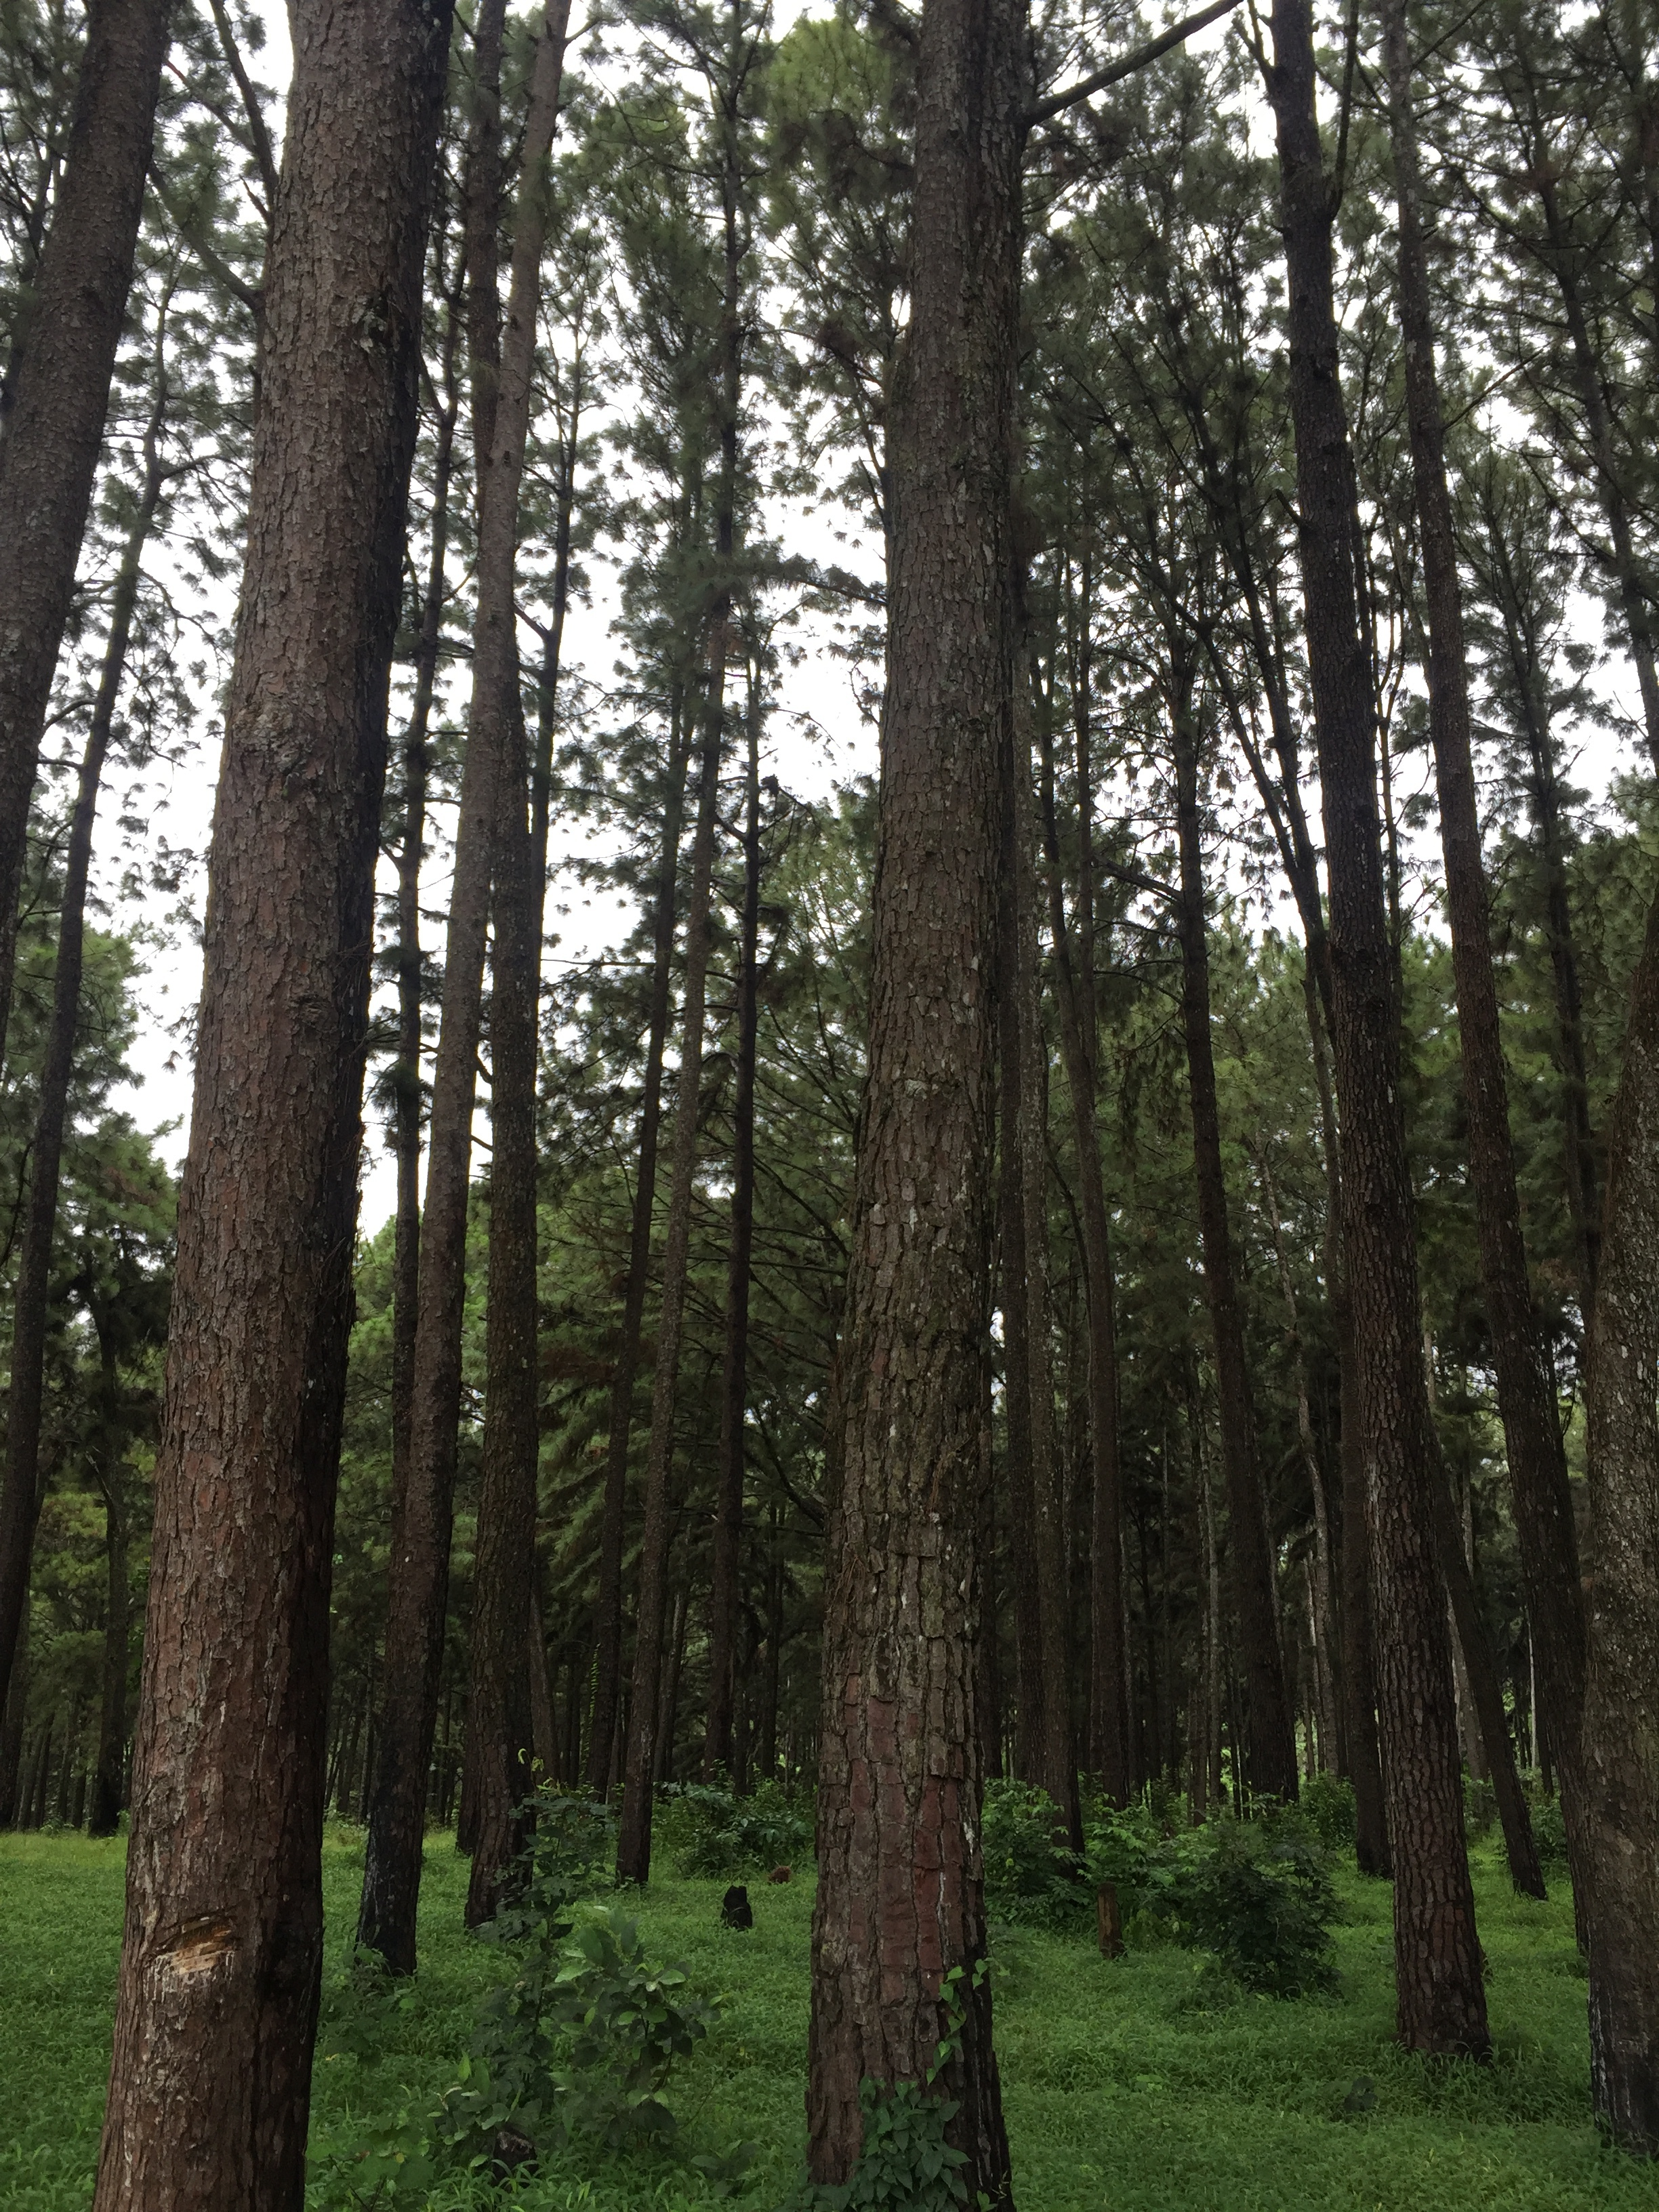 NGWO PINE FOREST | Ngwo Pine Forest consists of neat rows of trees. Perhaps the peace of the forest extends to the village as well; making it sleepy.